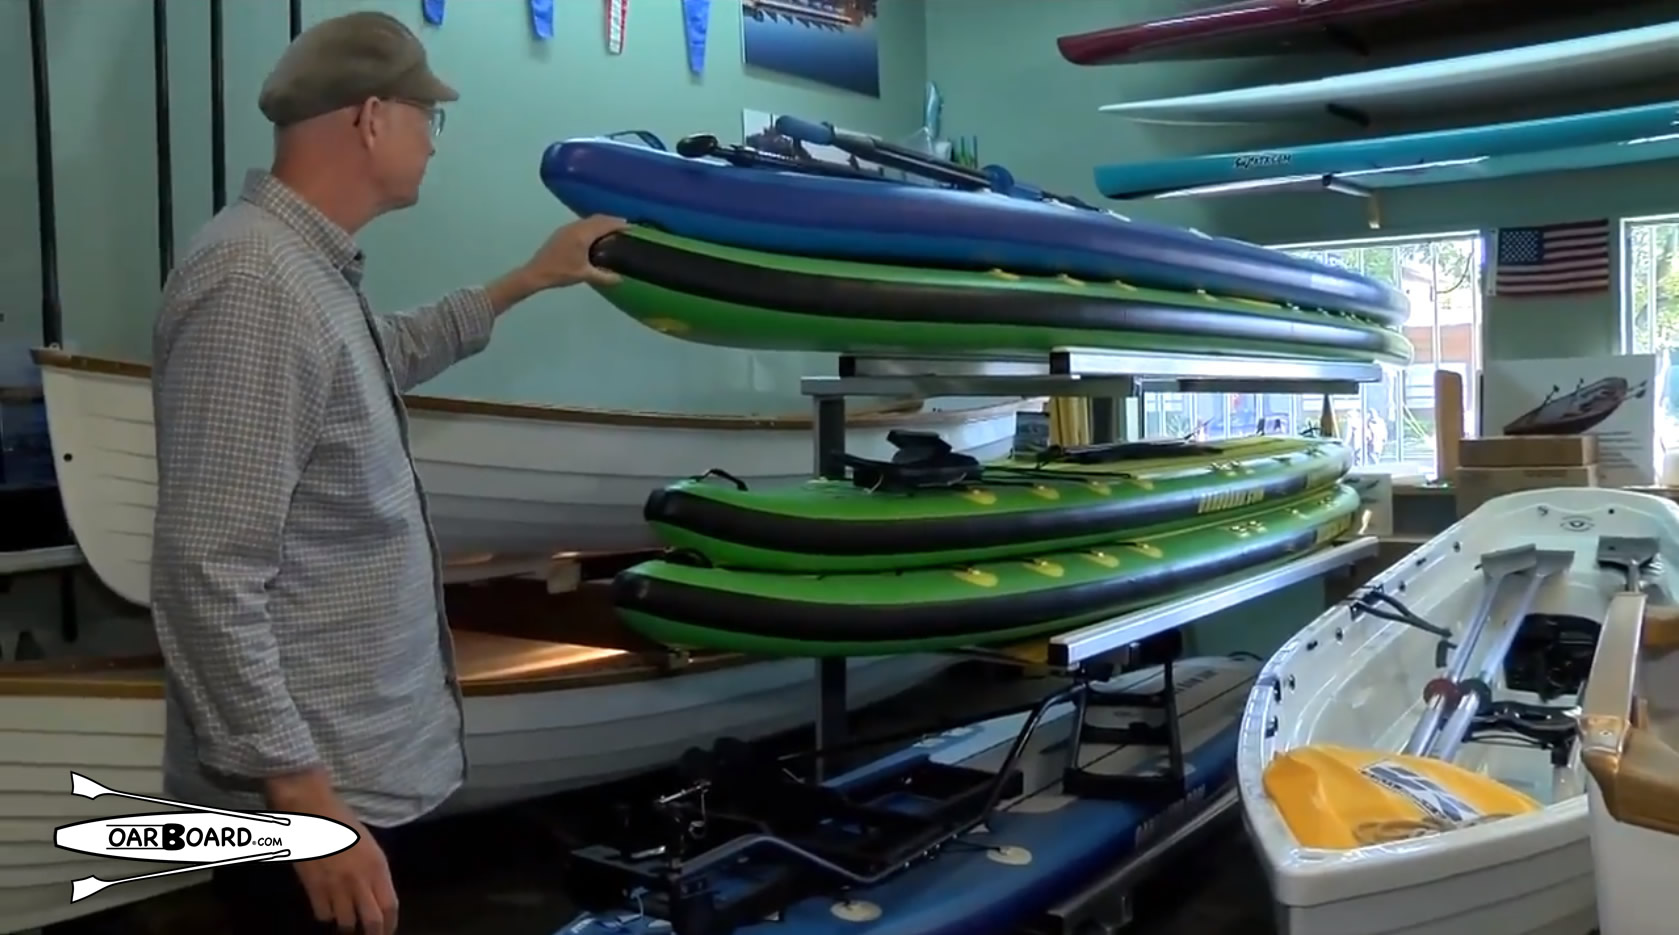 Oar Board rowing and paddle boards, Whitehall Rowing & Sail